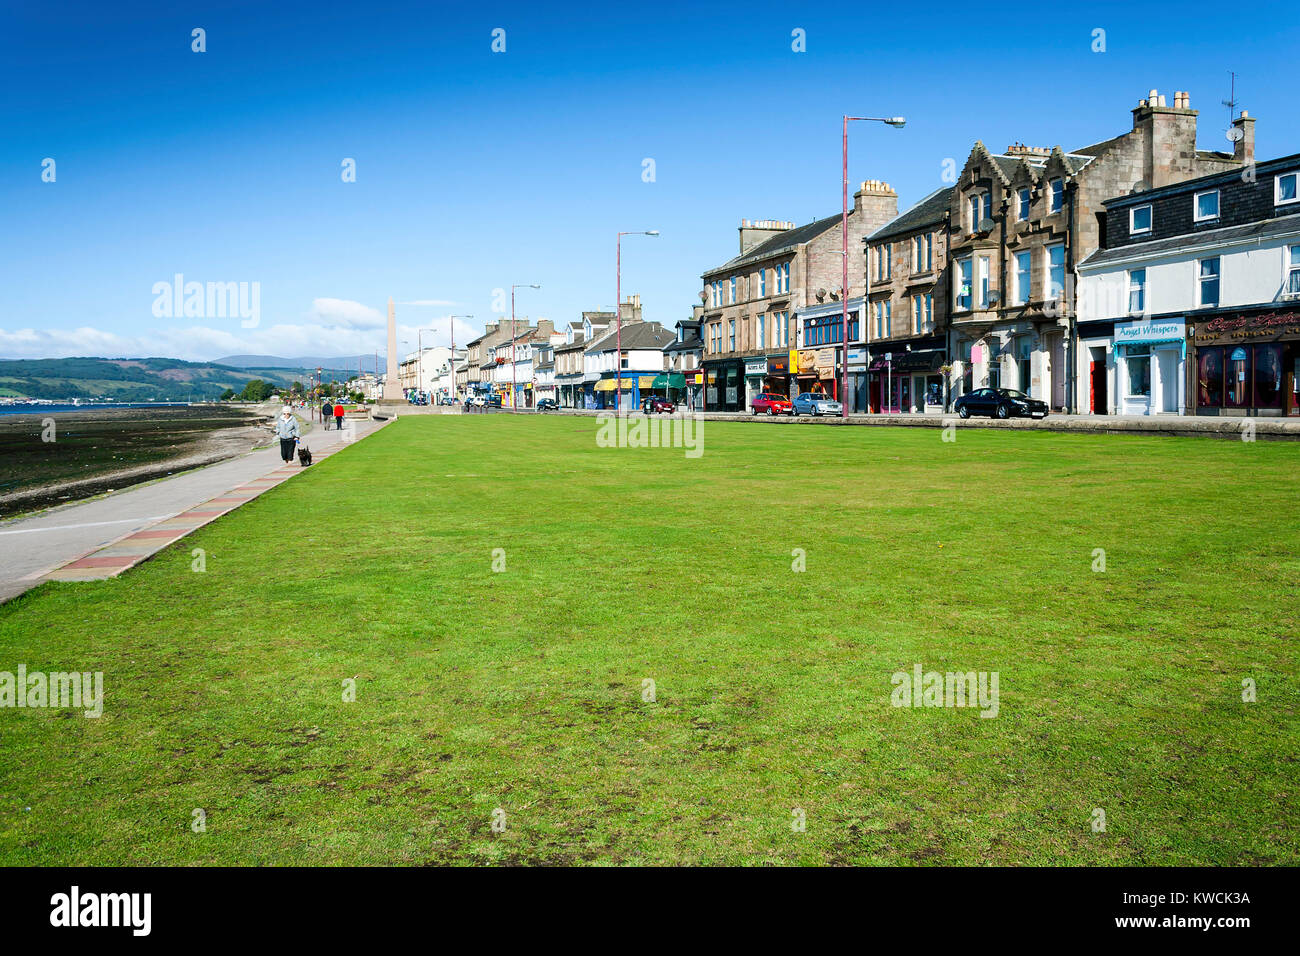 Helensburgh, Dunbartonshire, Scotland - August 29, 2010: Helensburgh town shop frontages along the edge of Clyde - Stock Image